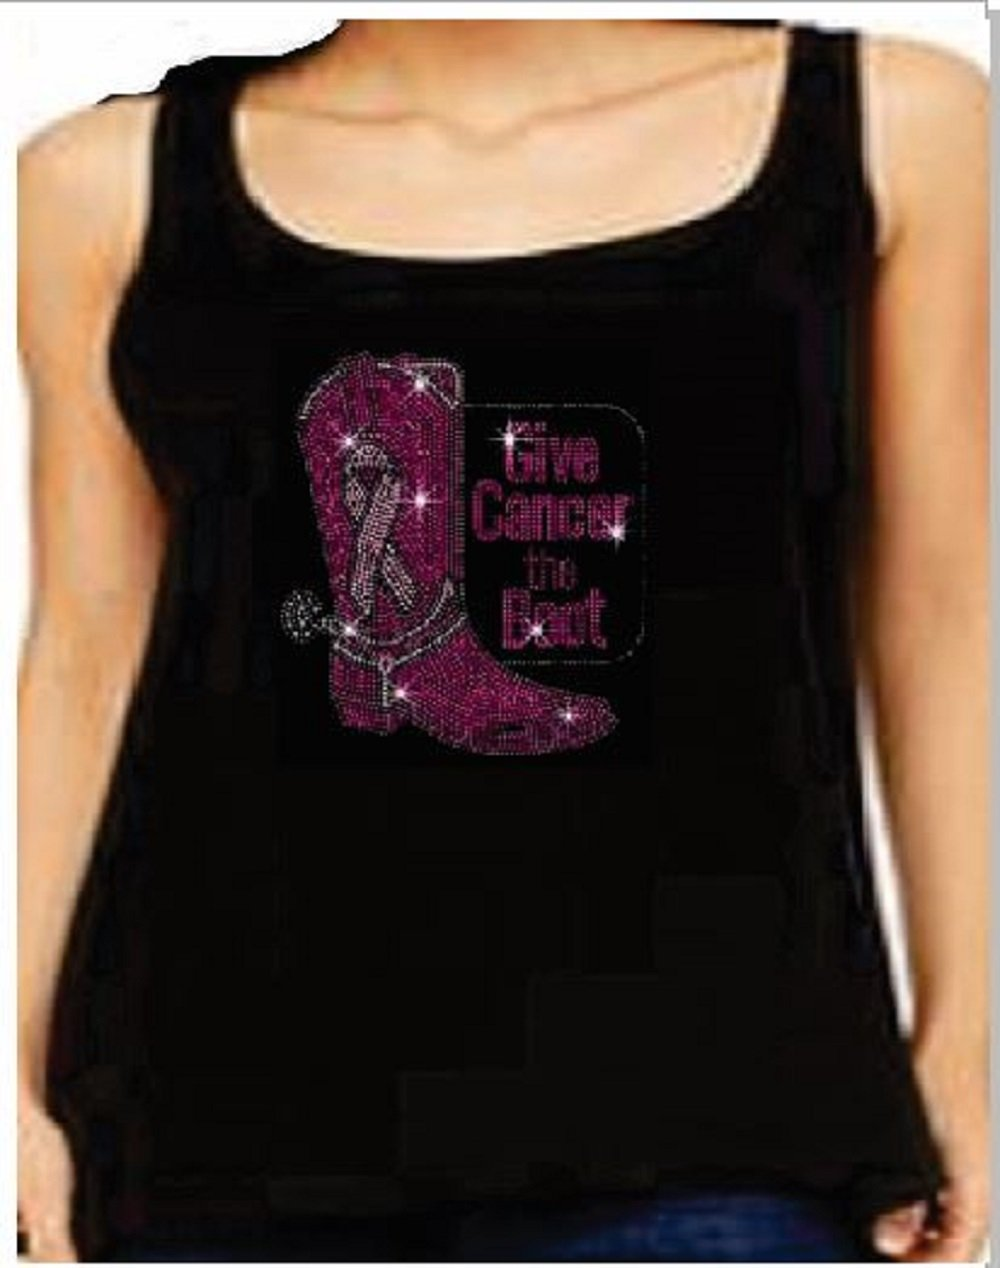 Rhinestone Womens T Shirt Breast Cancer Boot JRW-102 - S / Womens Tank Top T-Shirt